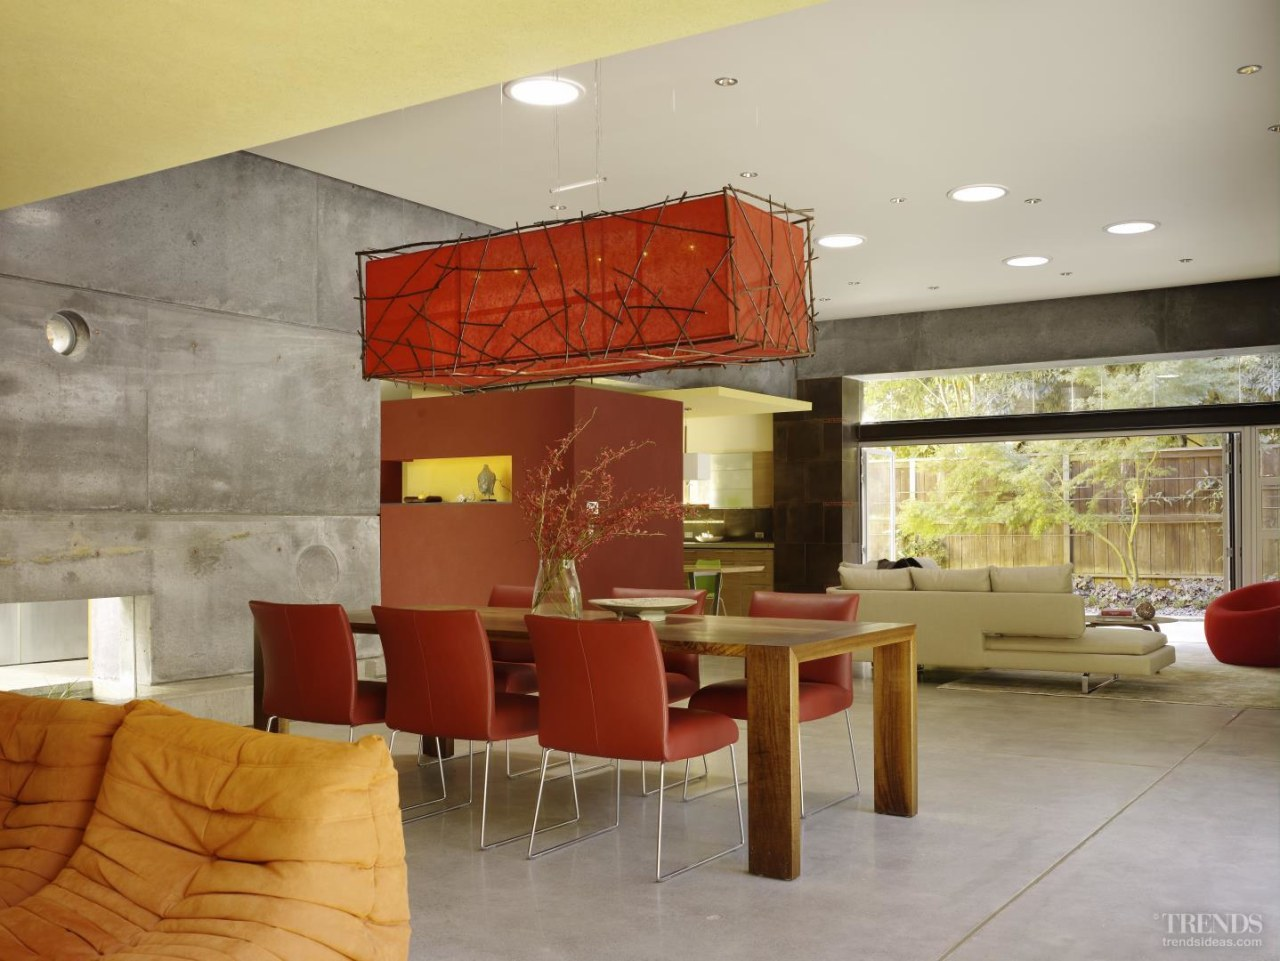 Solar tubes positioned at irregular intervals in the architecture, ceiling, floor, interior design, kitchen, living room, lobby, loft, table, wall, gray